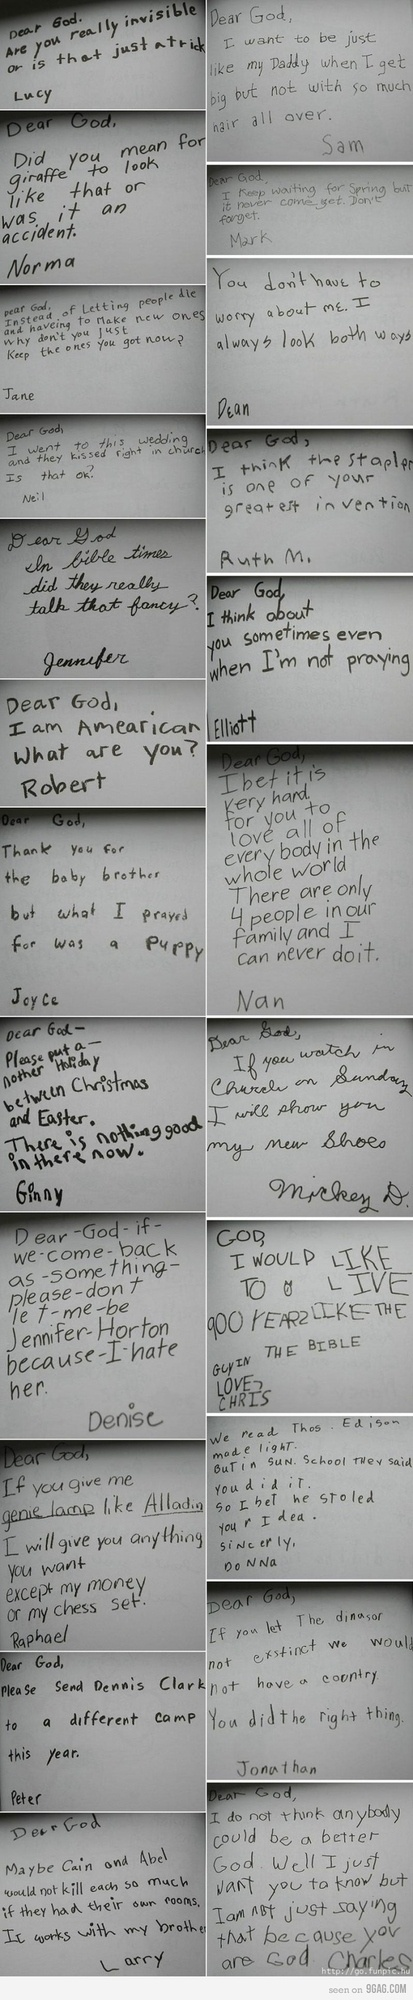 Funny Children's Letters to God picture collection